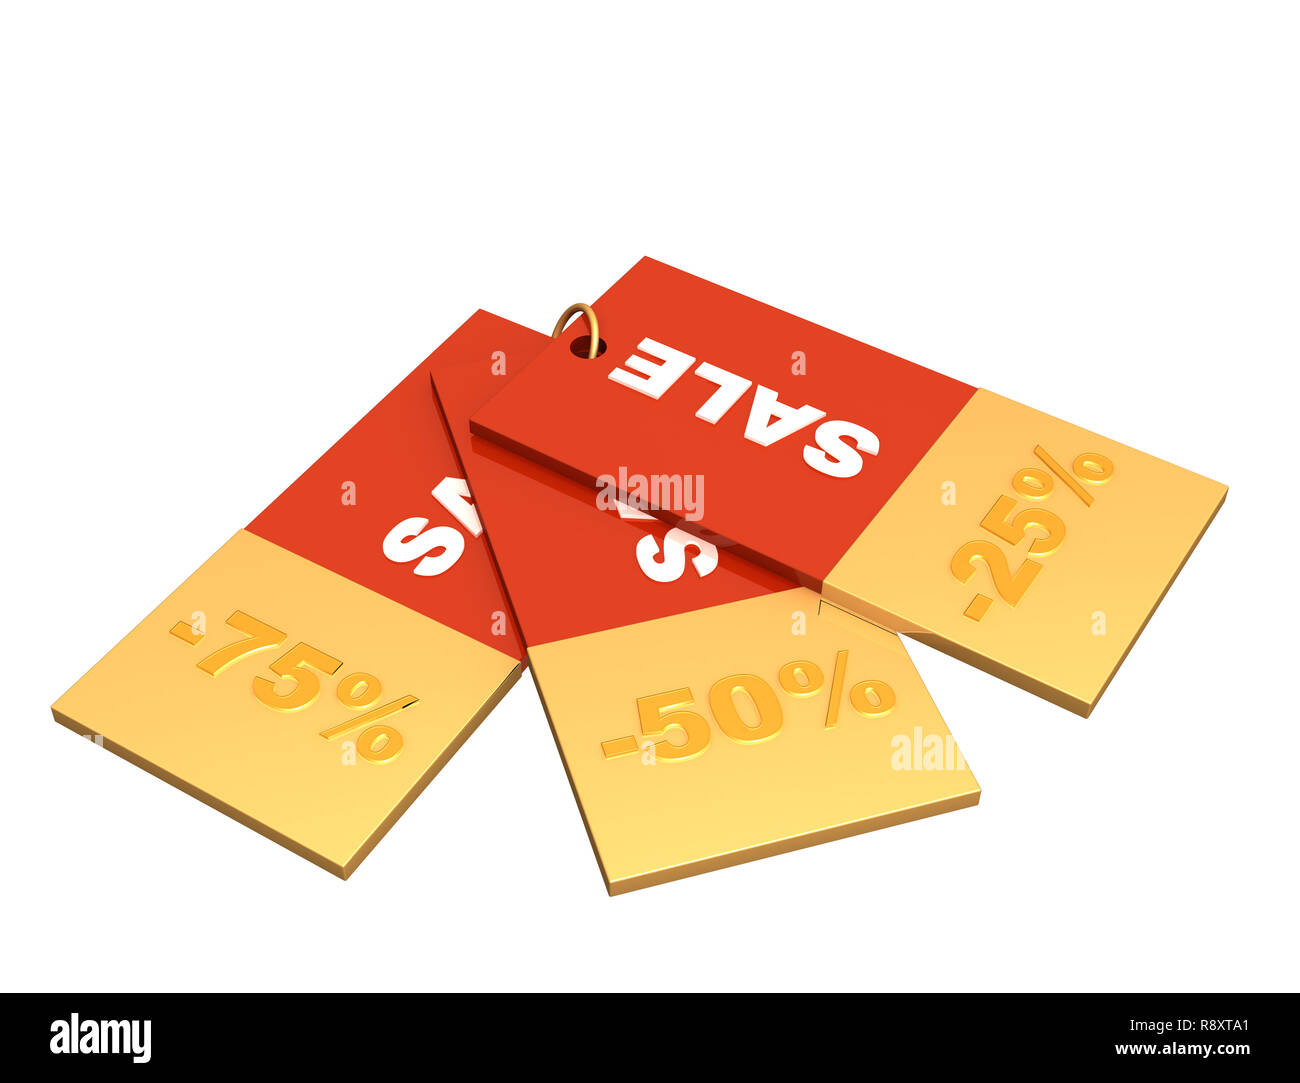 Sale - three labels of red color - Stock Image